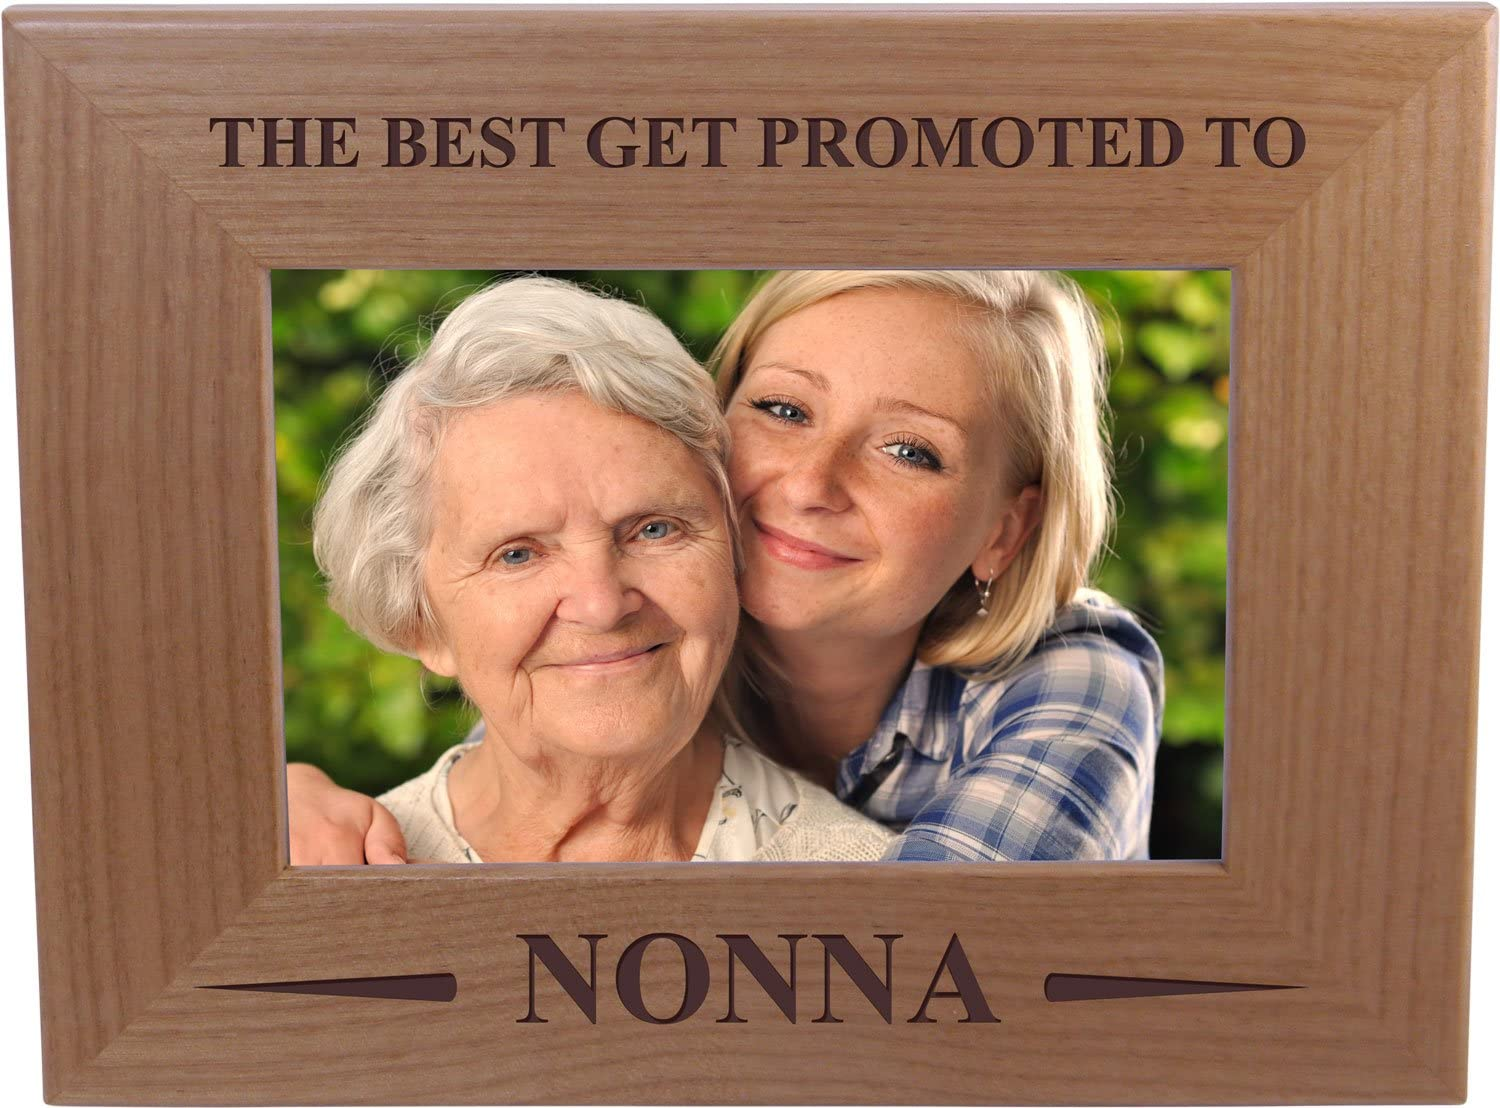 4x6 Inch Wood Picture Frame Great Gift for Motherss Day Birthday or Christmas Gift for Mom Grandma Wife Only The Best Get Promoted To Nonna